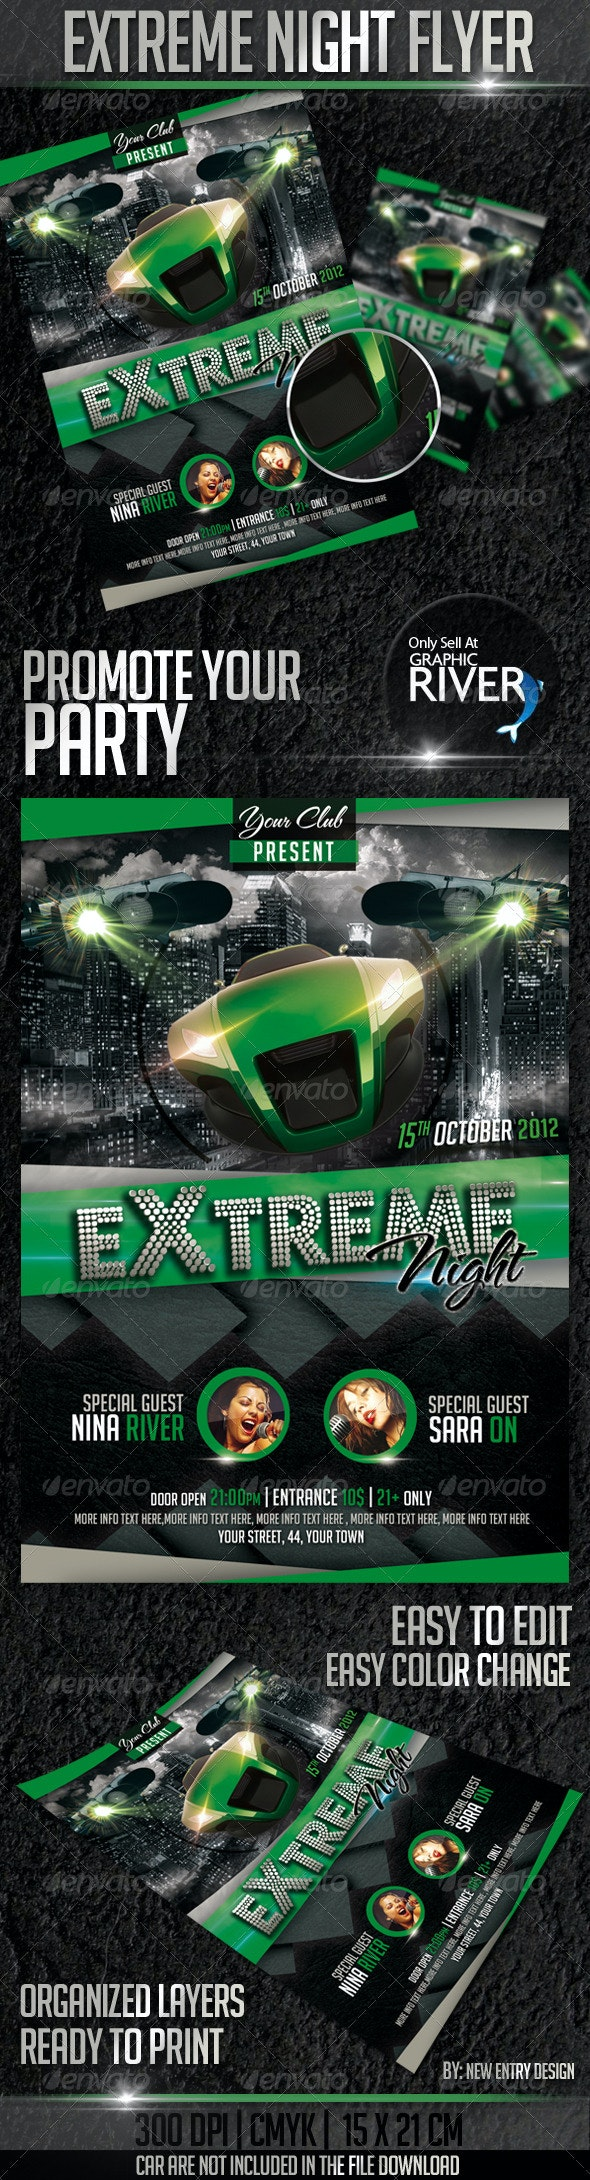 Extreme Night Flyer Template - Clubs & Parties Events